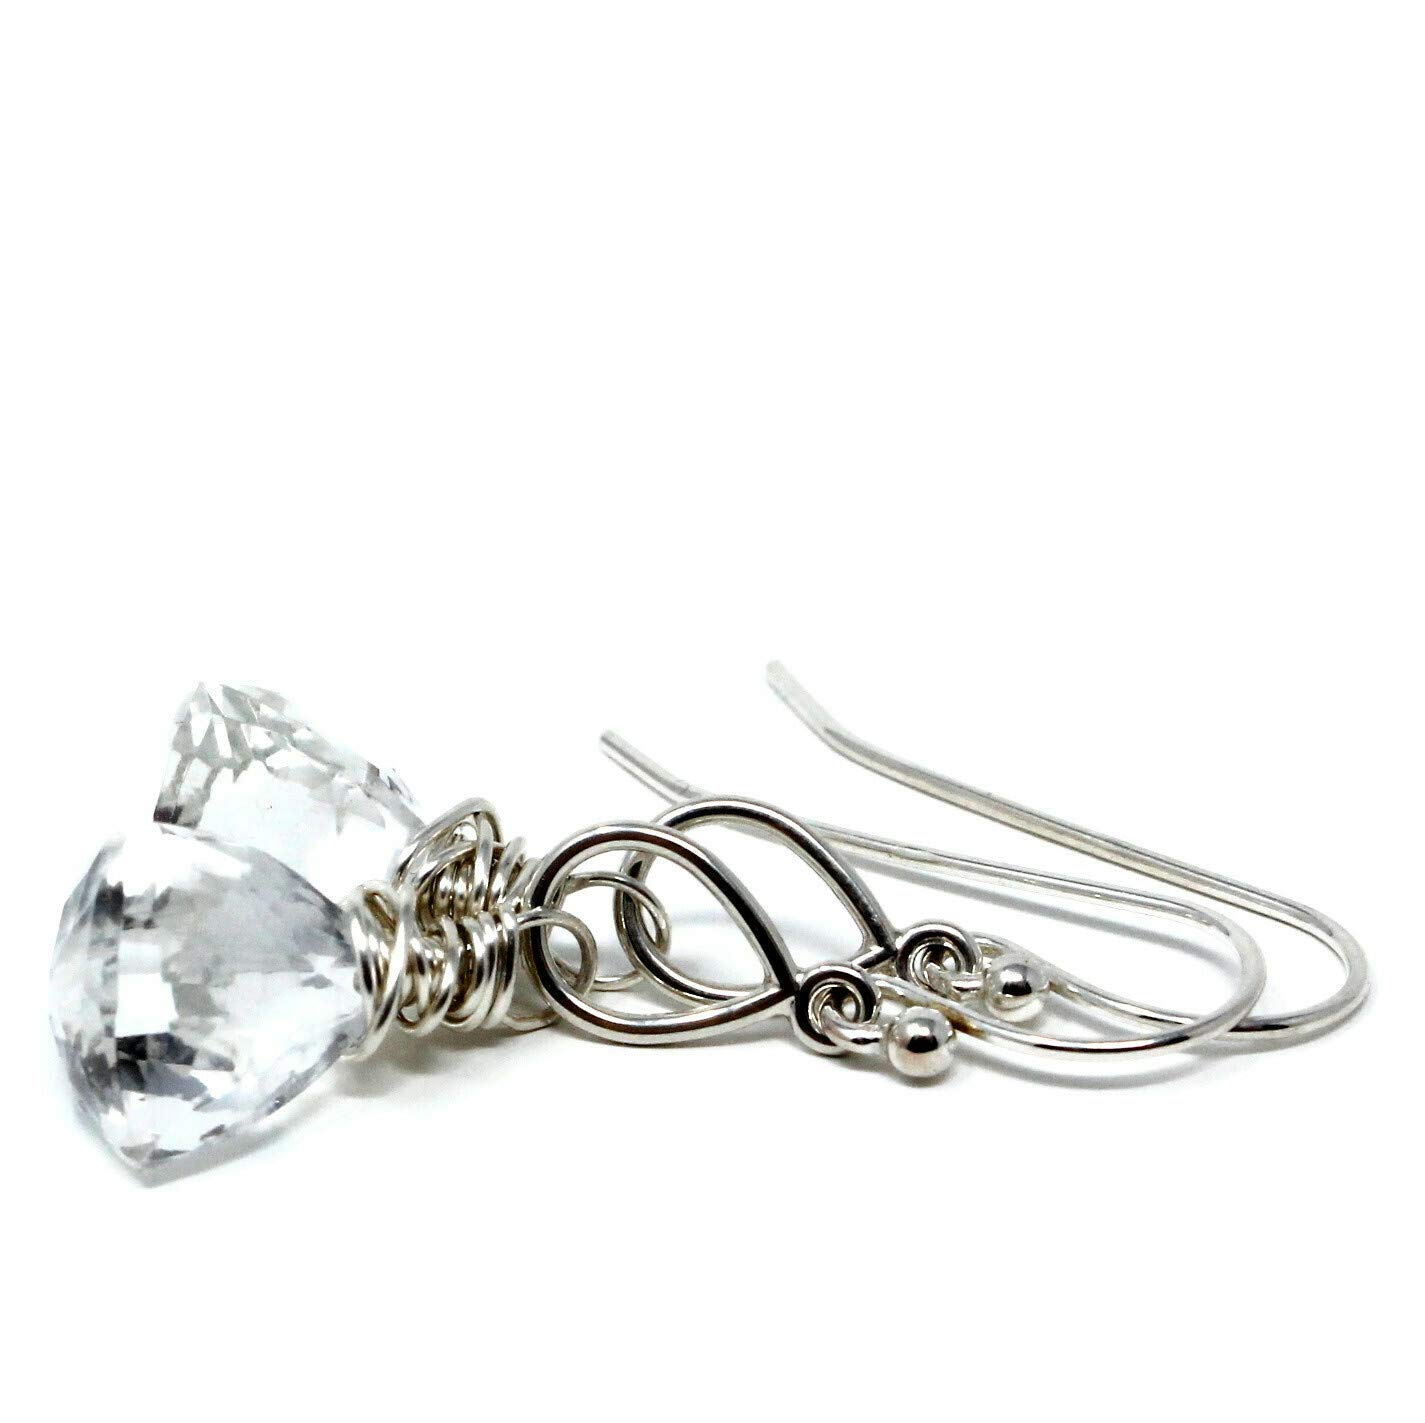 Crystal Quartz Earrings Sterling High quality new Max 69% OFF Trilliant Faceted Petite Silver